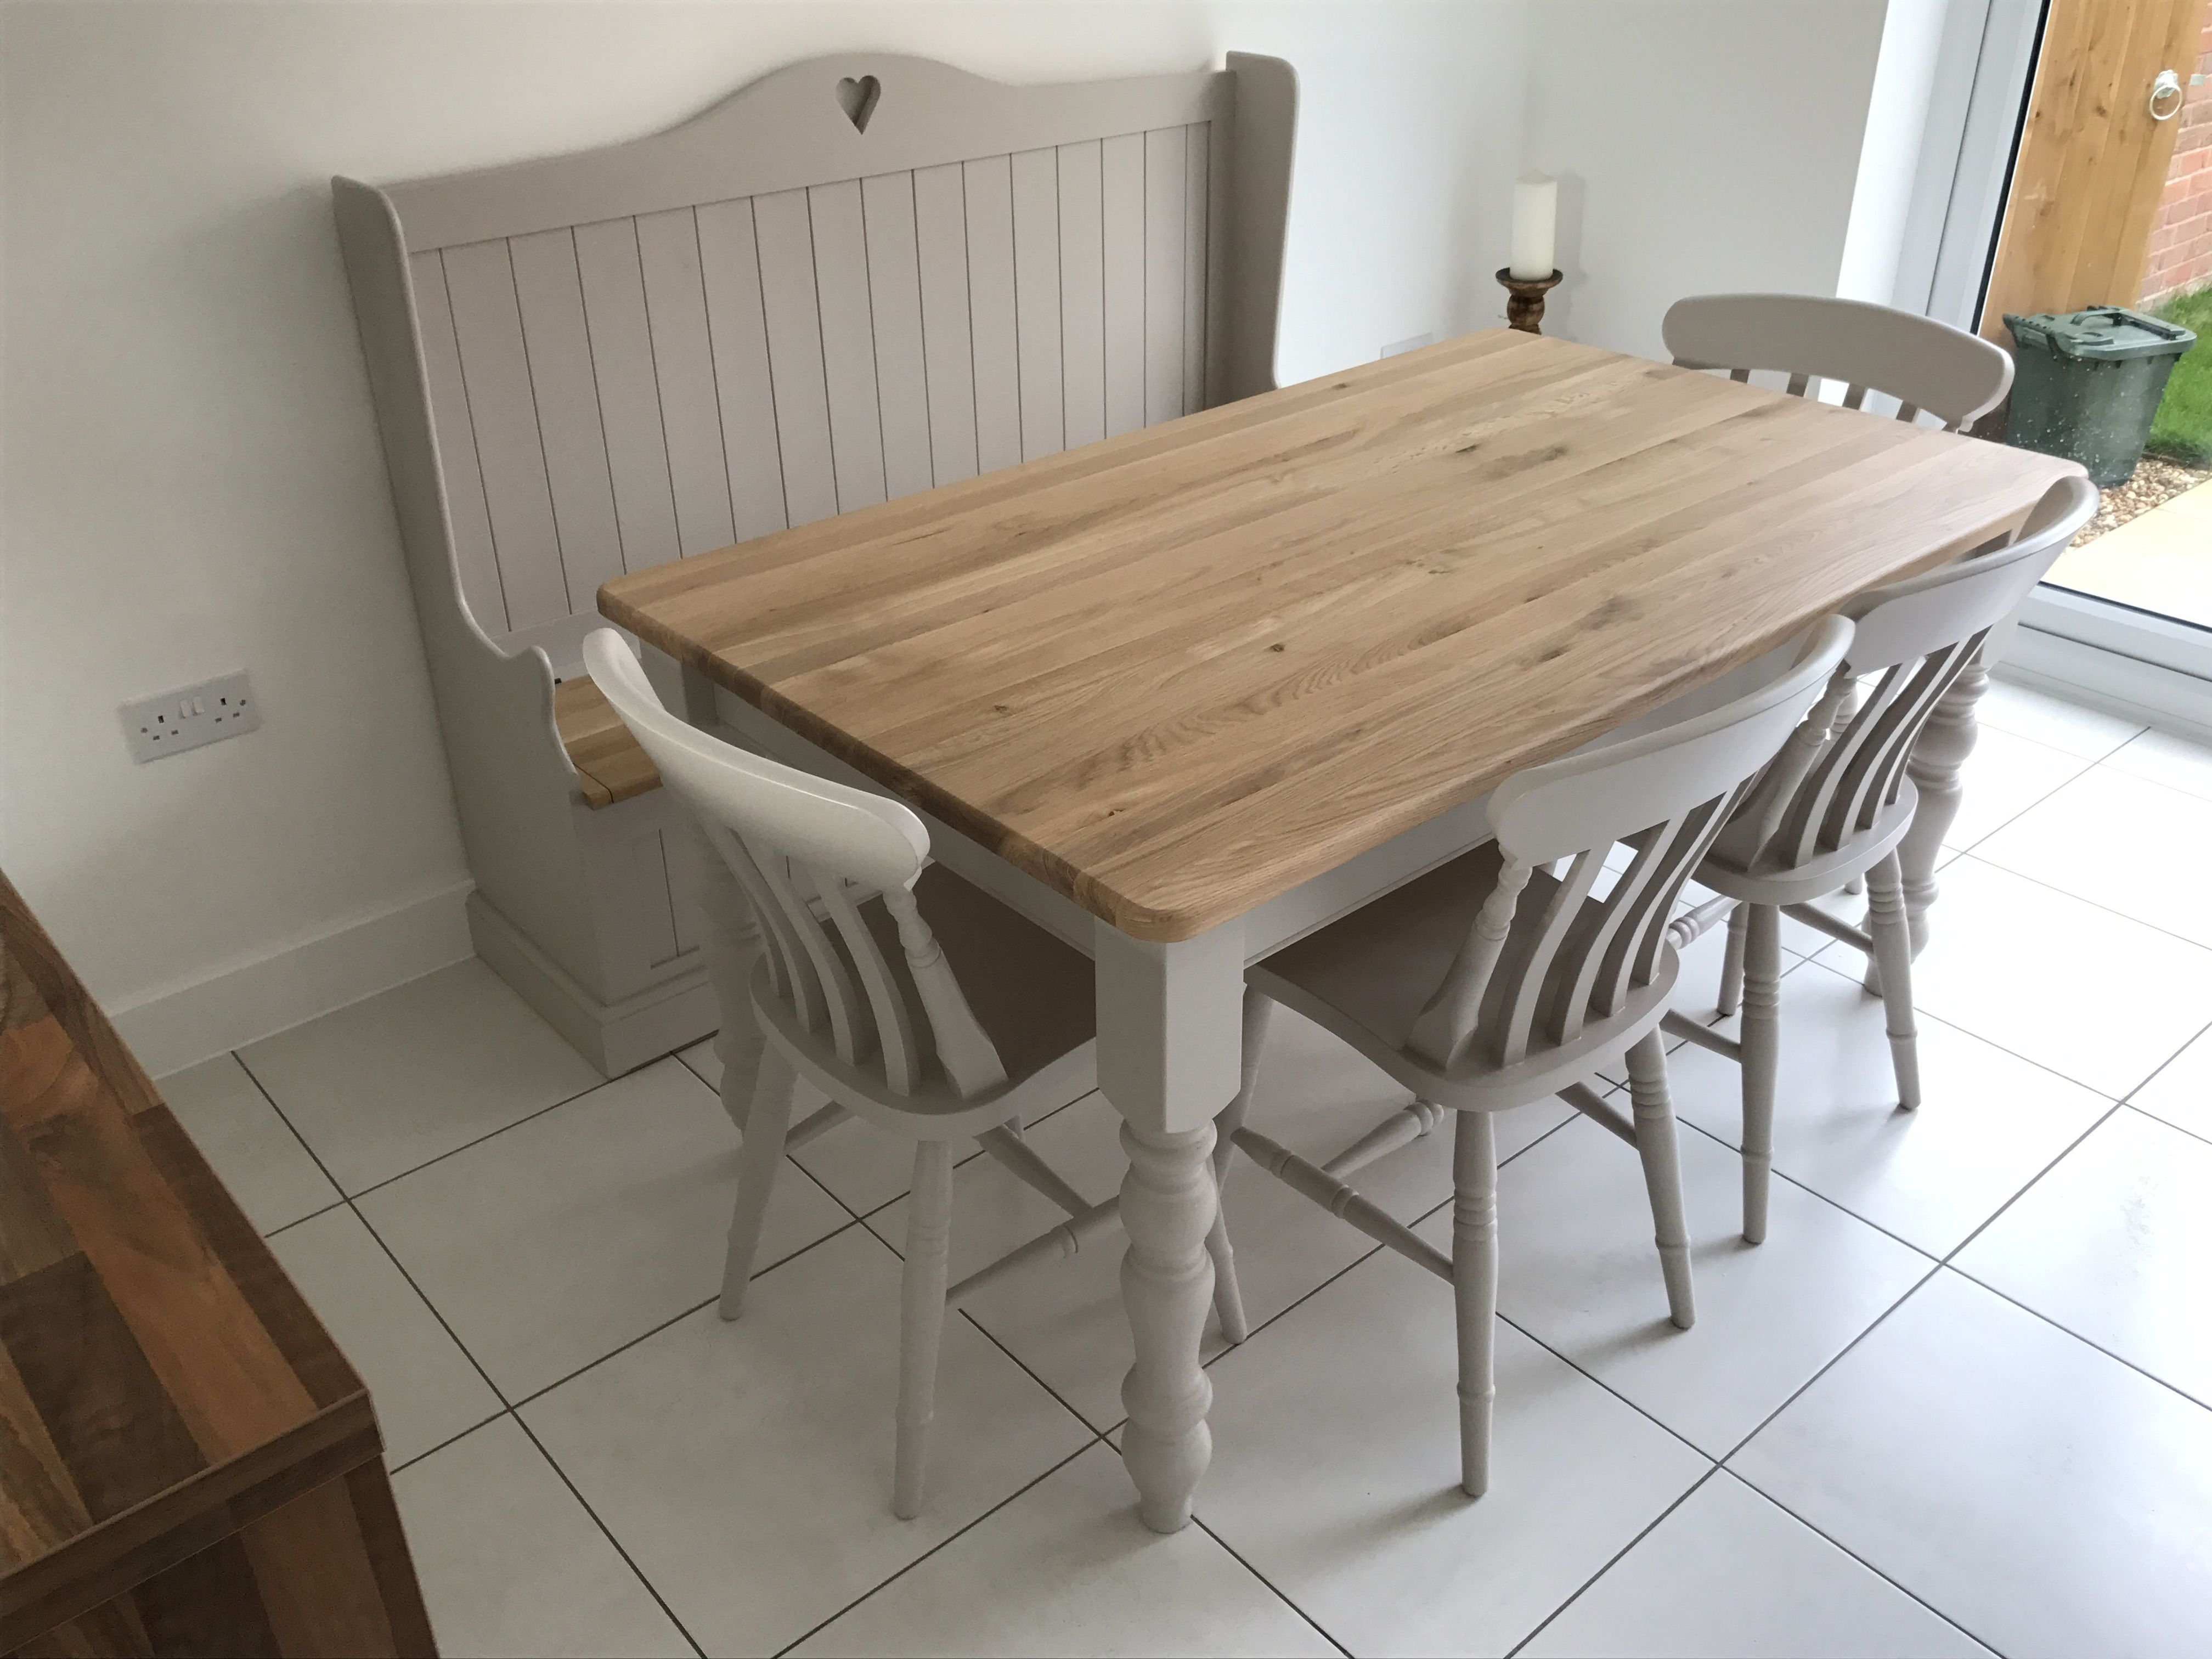 Solid Oak Table Set 5x3ft With Monks Bench In 2020 Solid Oak